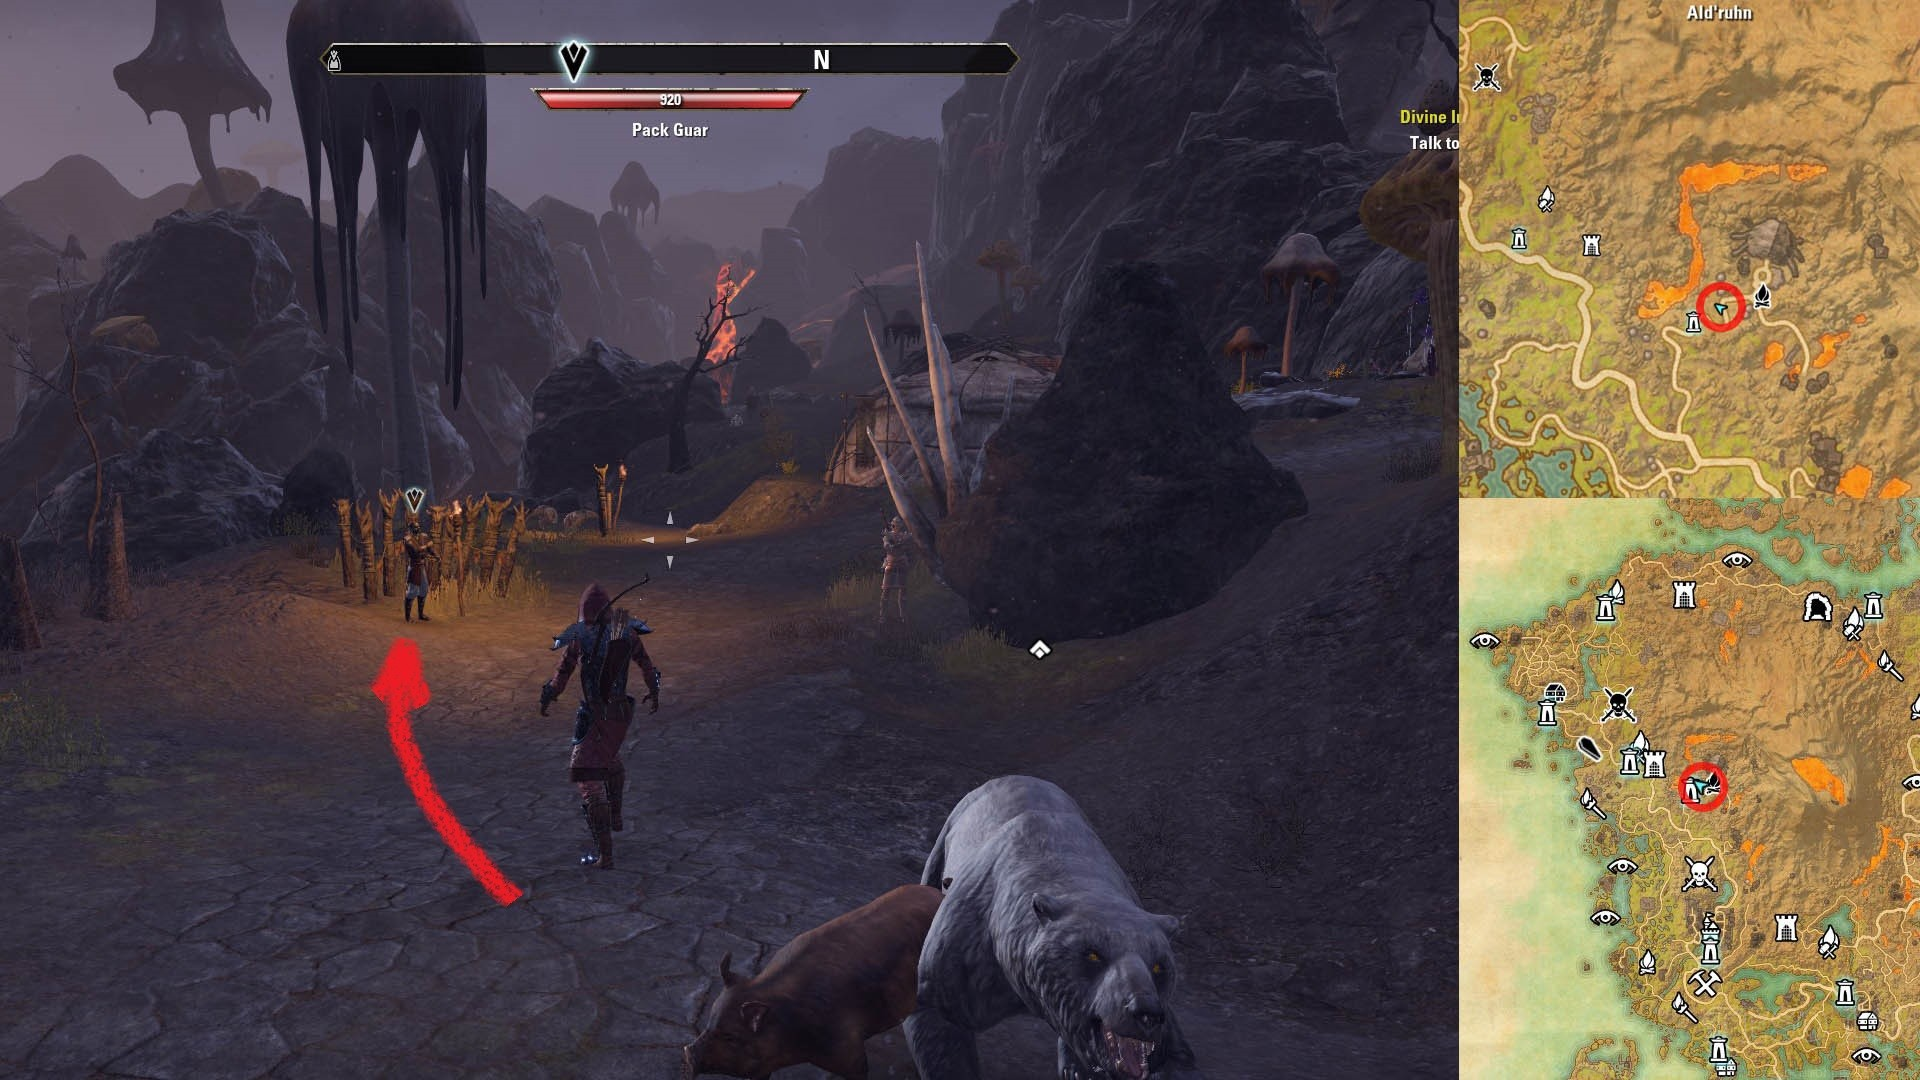 How to Start Vvardenfell Ashlander Daily Quests